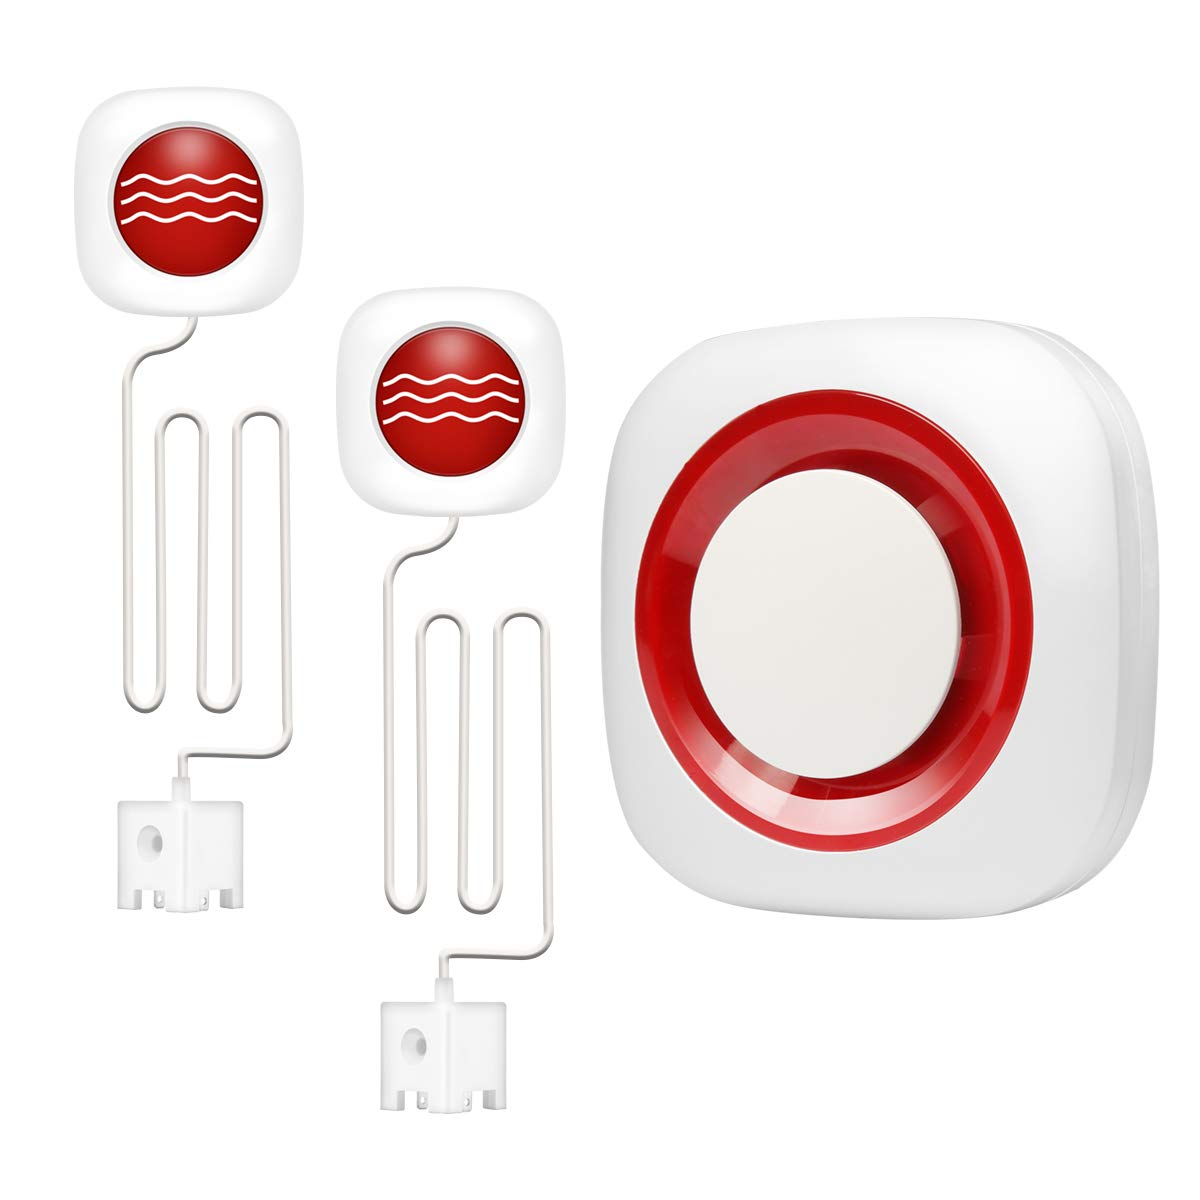 2 Pack Smart Water Leak Detector and Flood Sensor with GSM Alarm Host Kit (Sound-Light Alarm SMS/Call Notification) for Home Pool Warehouse Basement Business Protection by Wasan